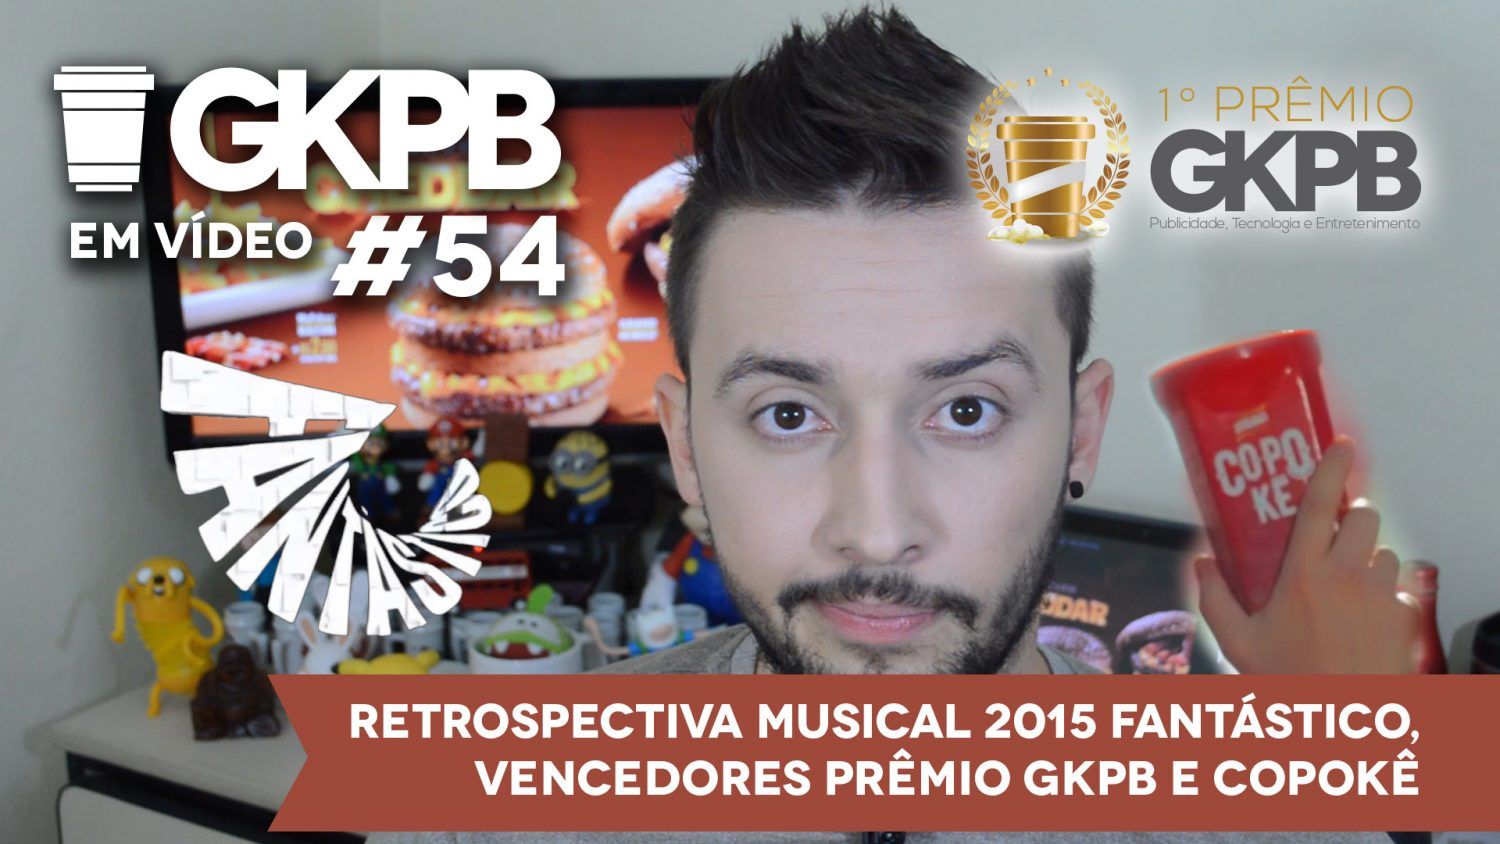 gkpb-em-video-54-2-retrospectiva-musical-fantastico-2015-copoke-premio-gkpb-blog-geek-publicitario